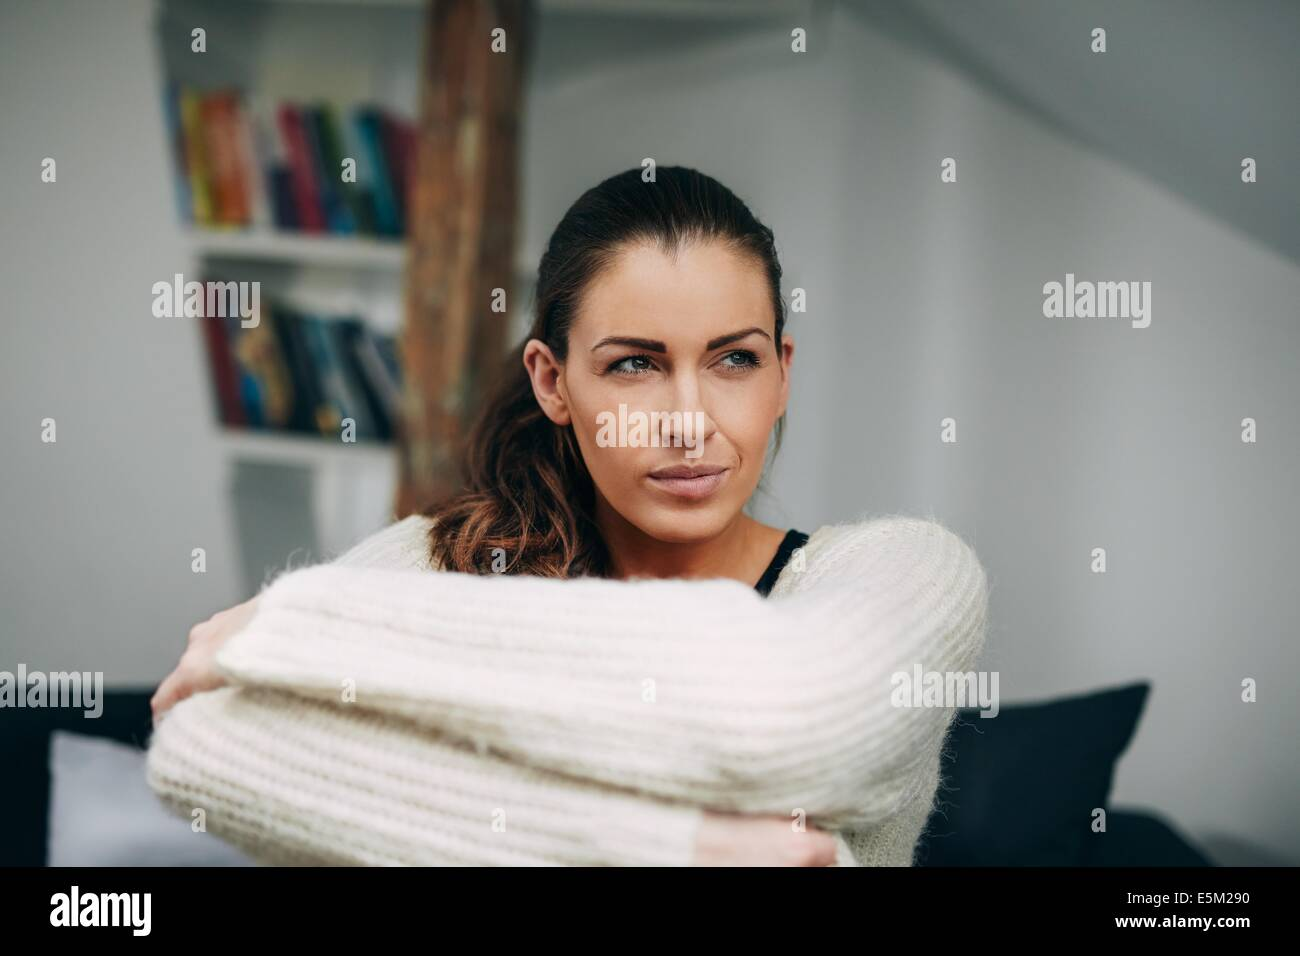 Portrait of young lady sitting alone on sofa looking away. Caucasian female model at home daydreaming. - Stock Image